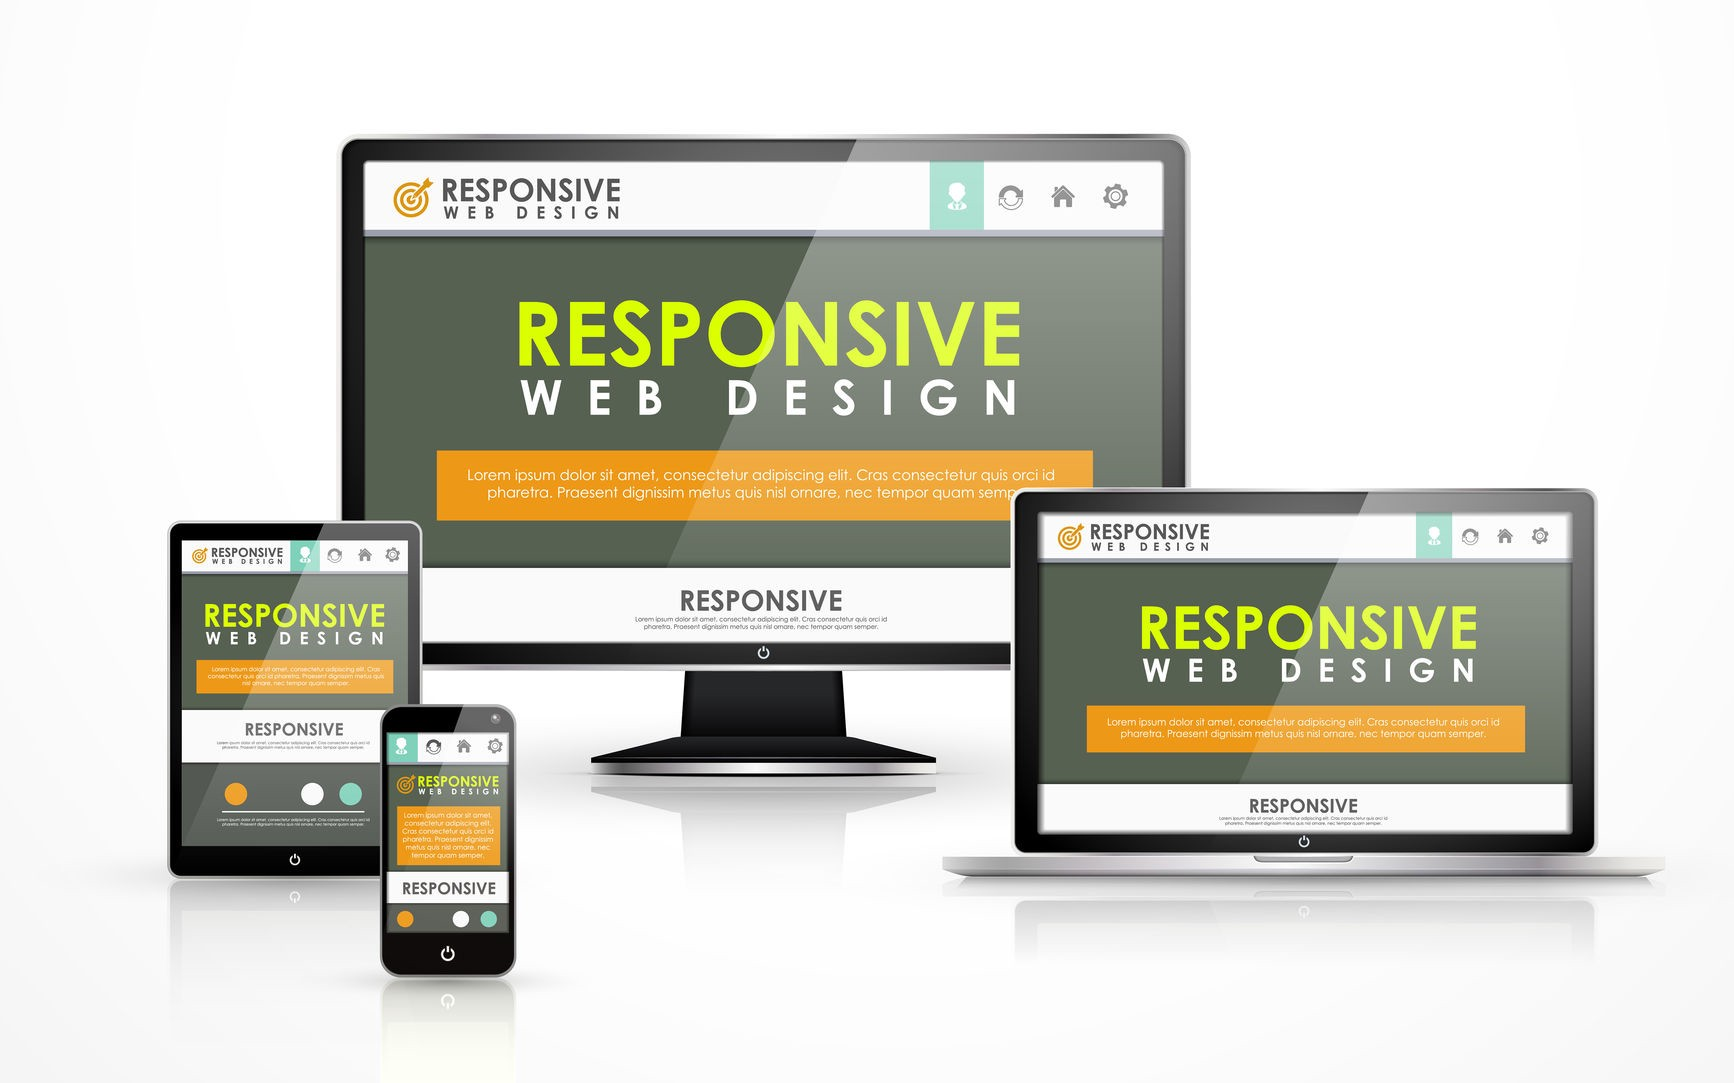 Best Practices Of Responsive Web Design  Level Up  Medium-7641